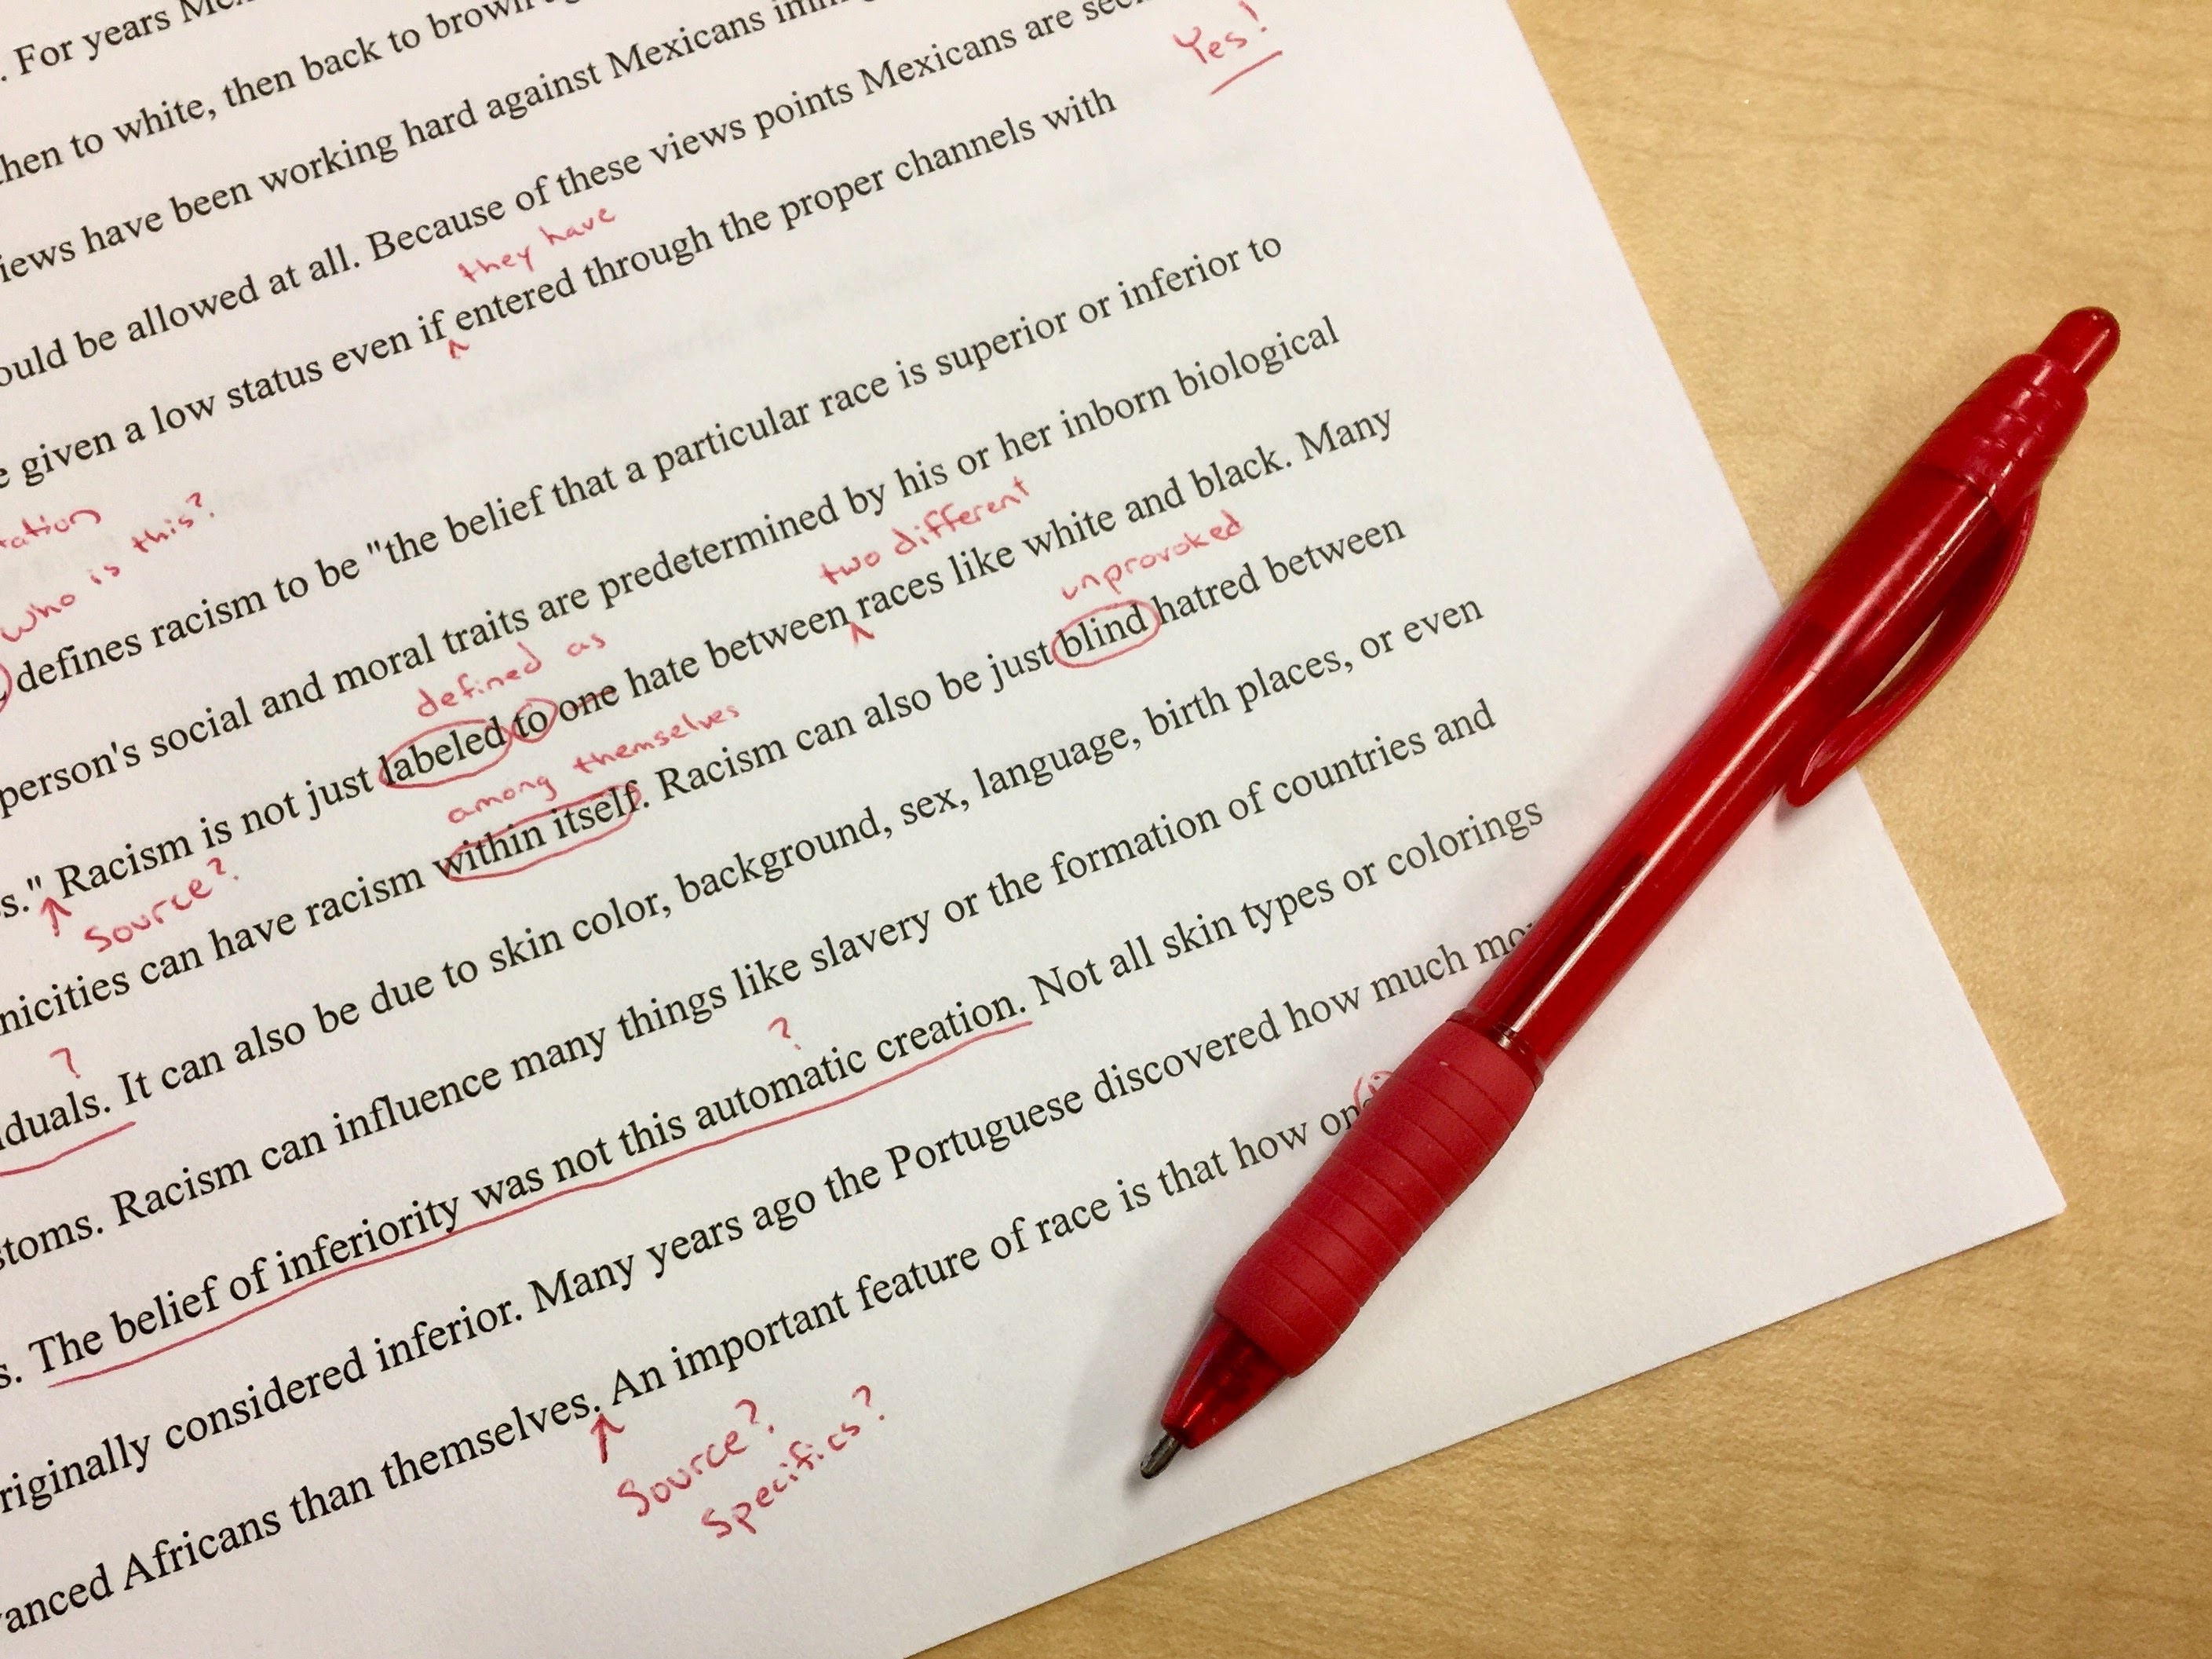 editing image red pen